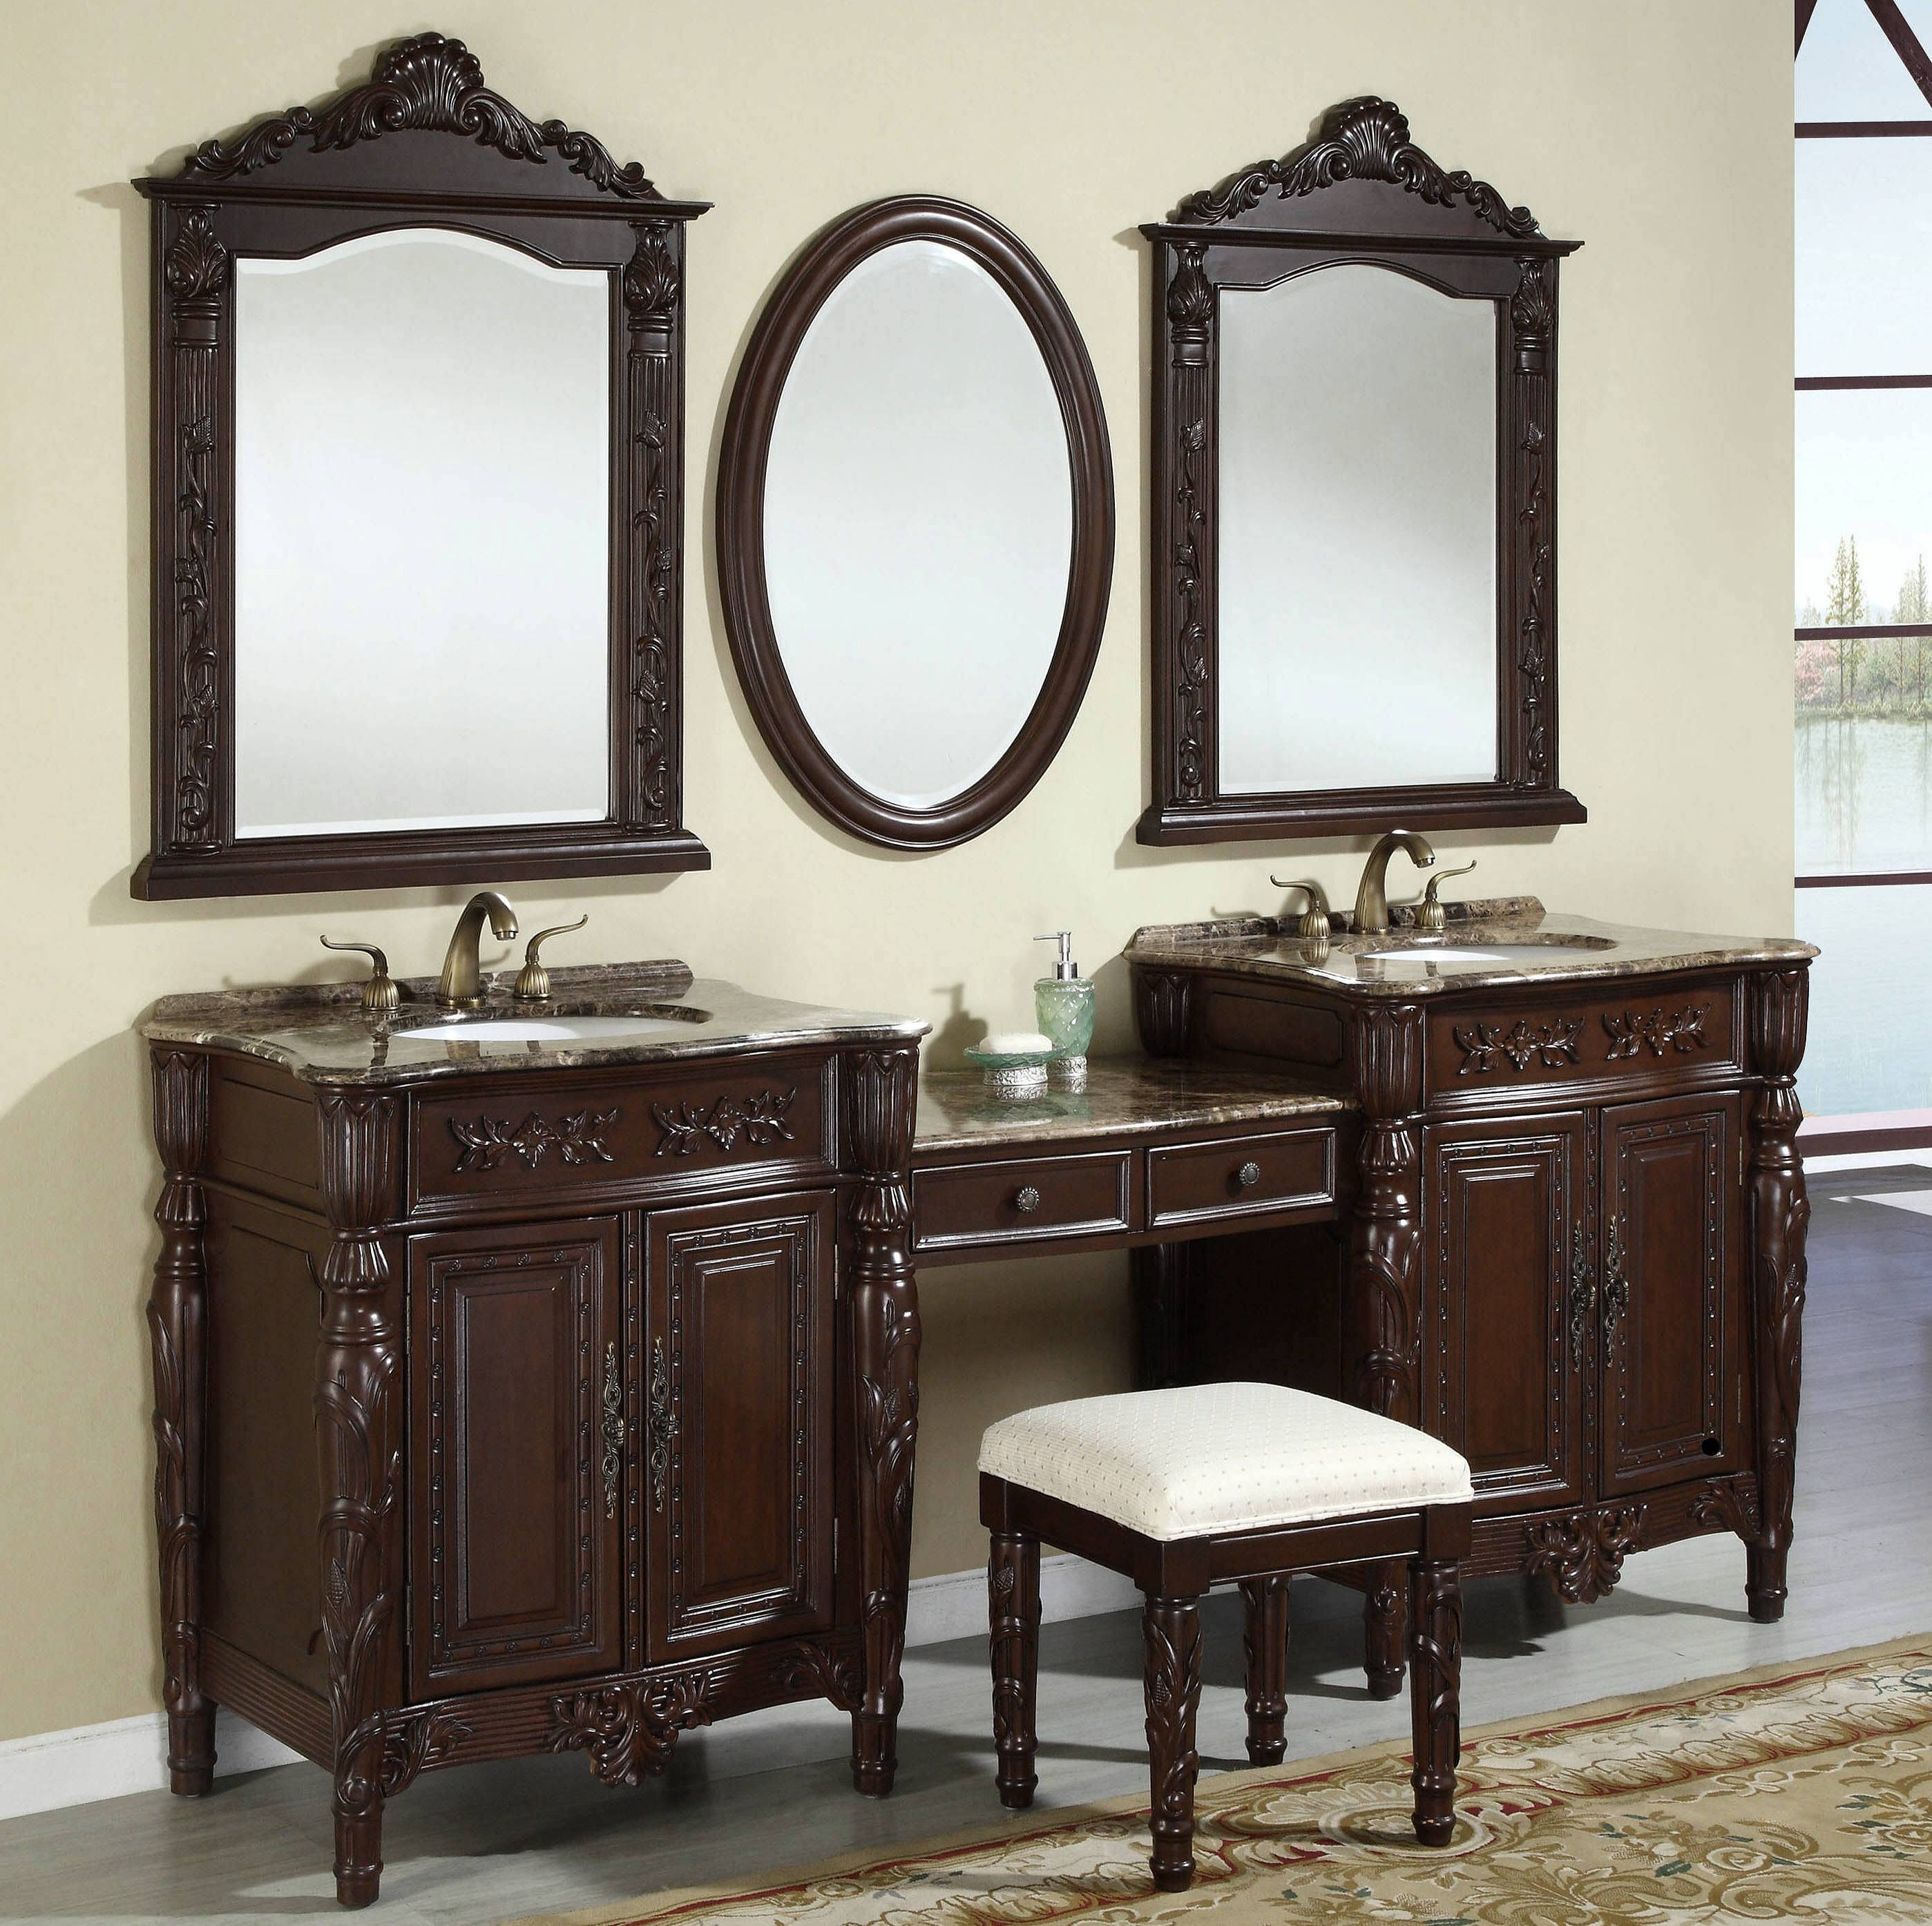 Bathroom Vanity Mirrors. Best 20 Bathroom Vanity Mirrors Ideas On with regard to Triple Oval Mirrors (Image 2 of 25)